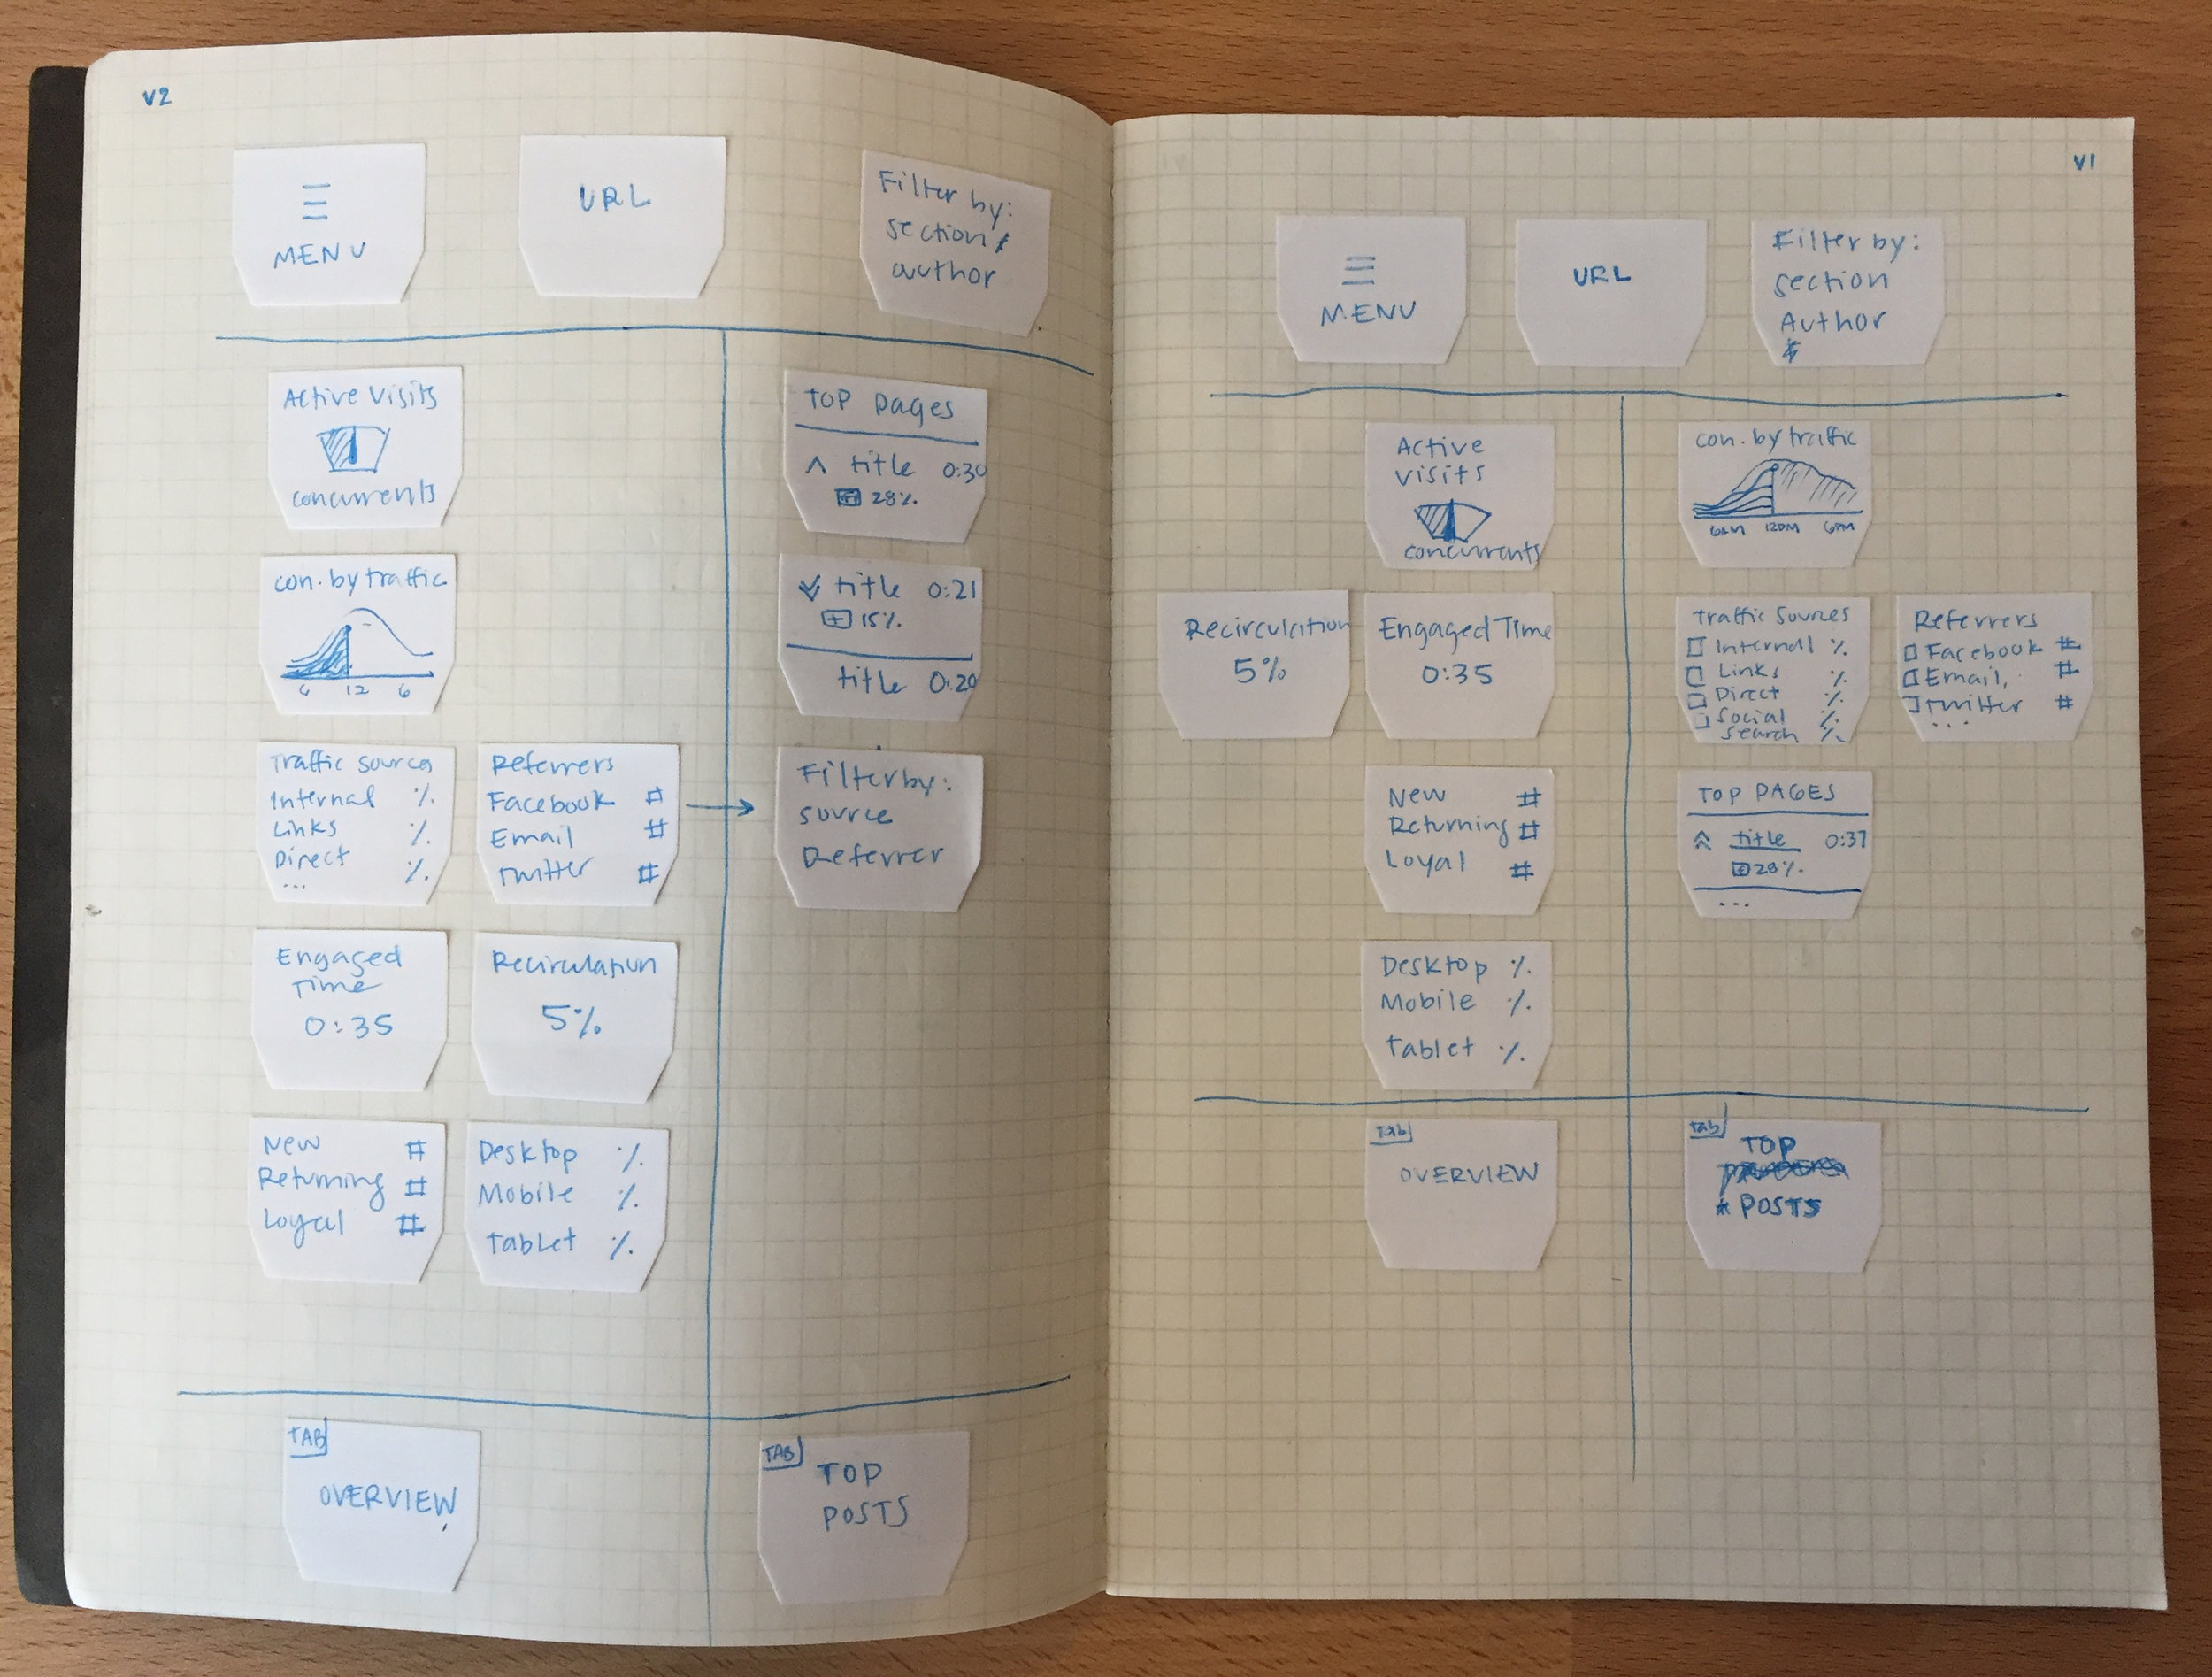 Sticky-note prototype allowed me to quickly reorganize data and page hierarchy